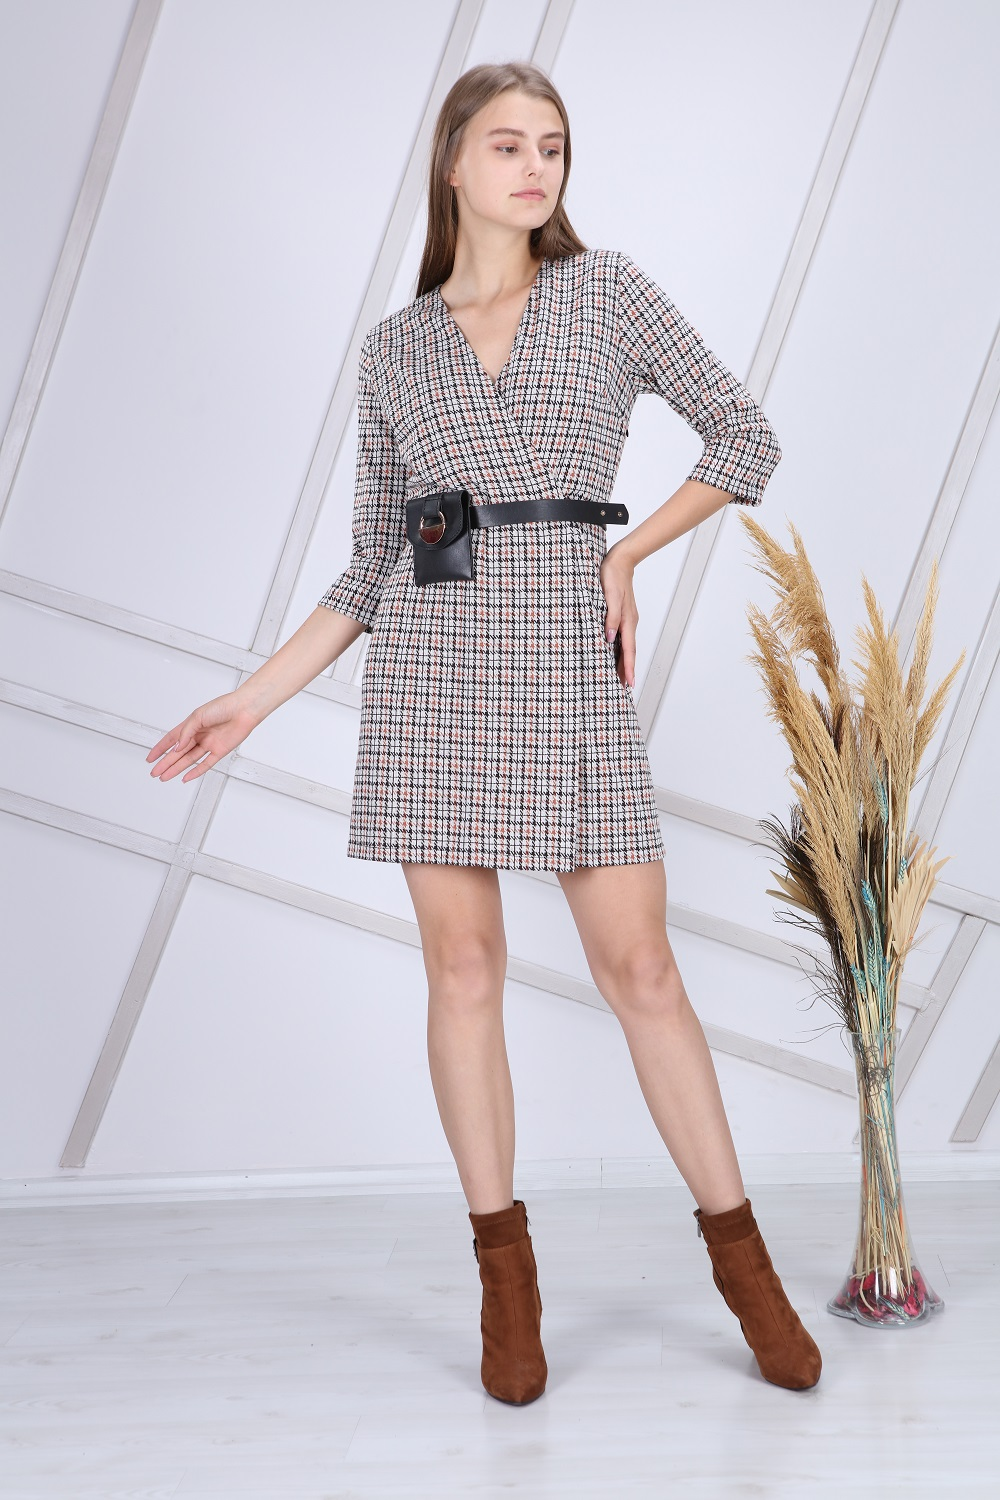 Beige Color Double Breasted Dress With Bag